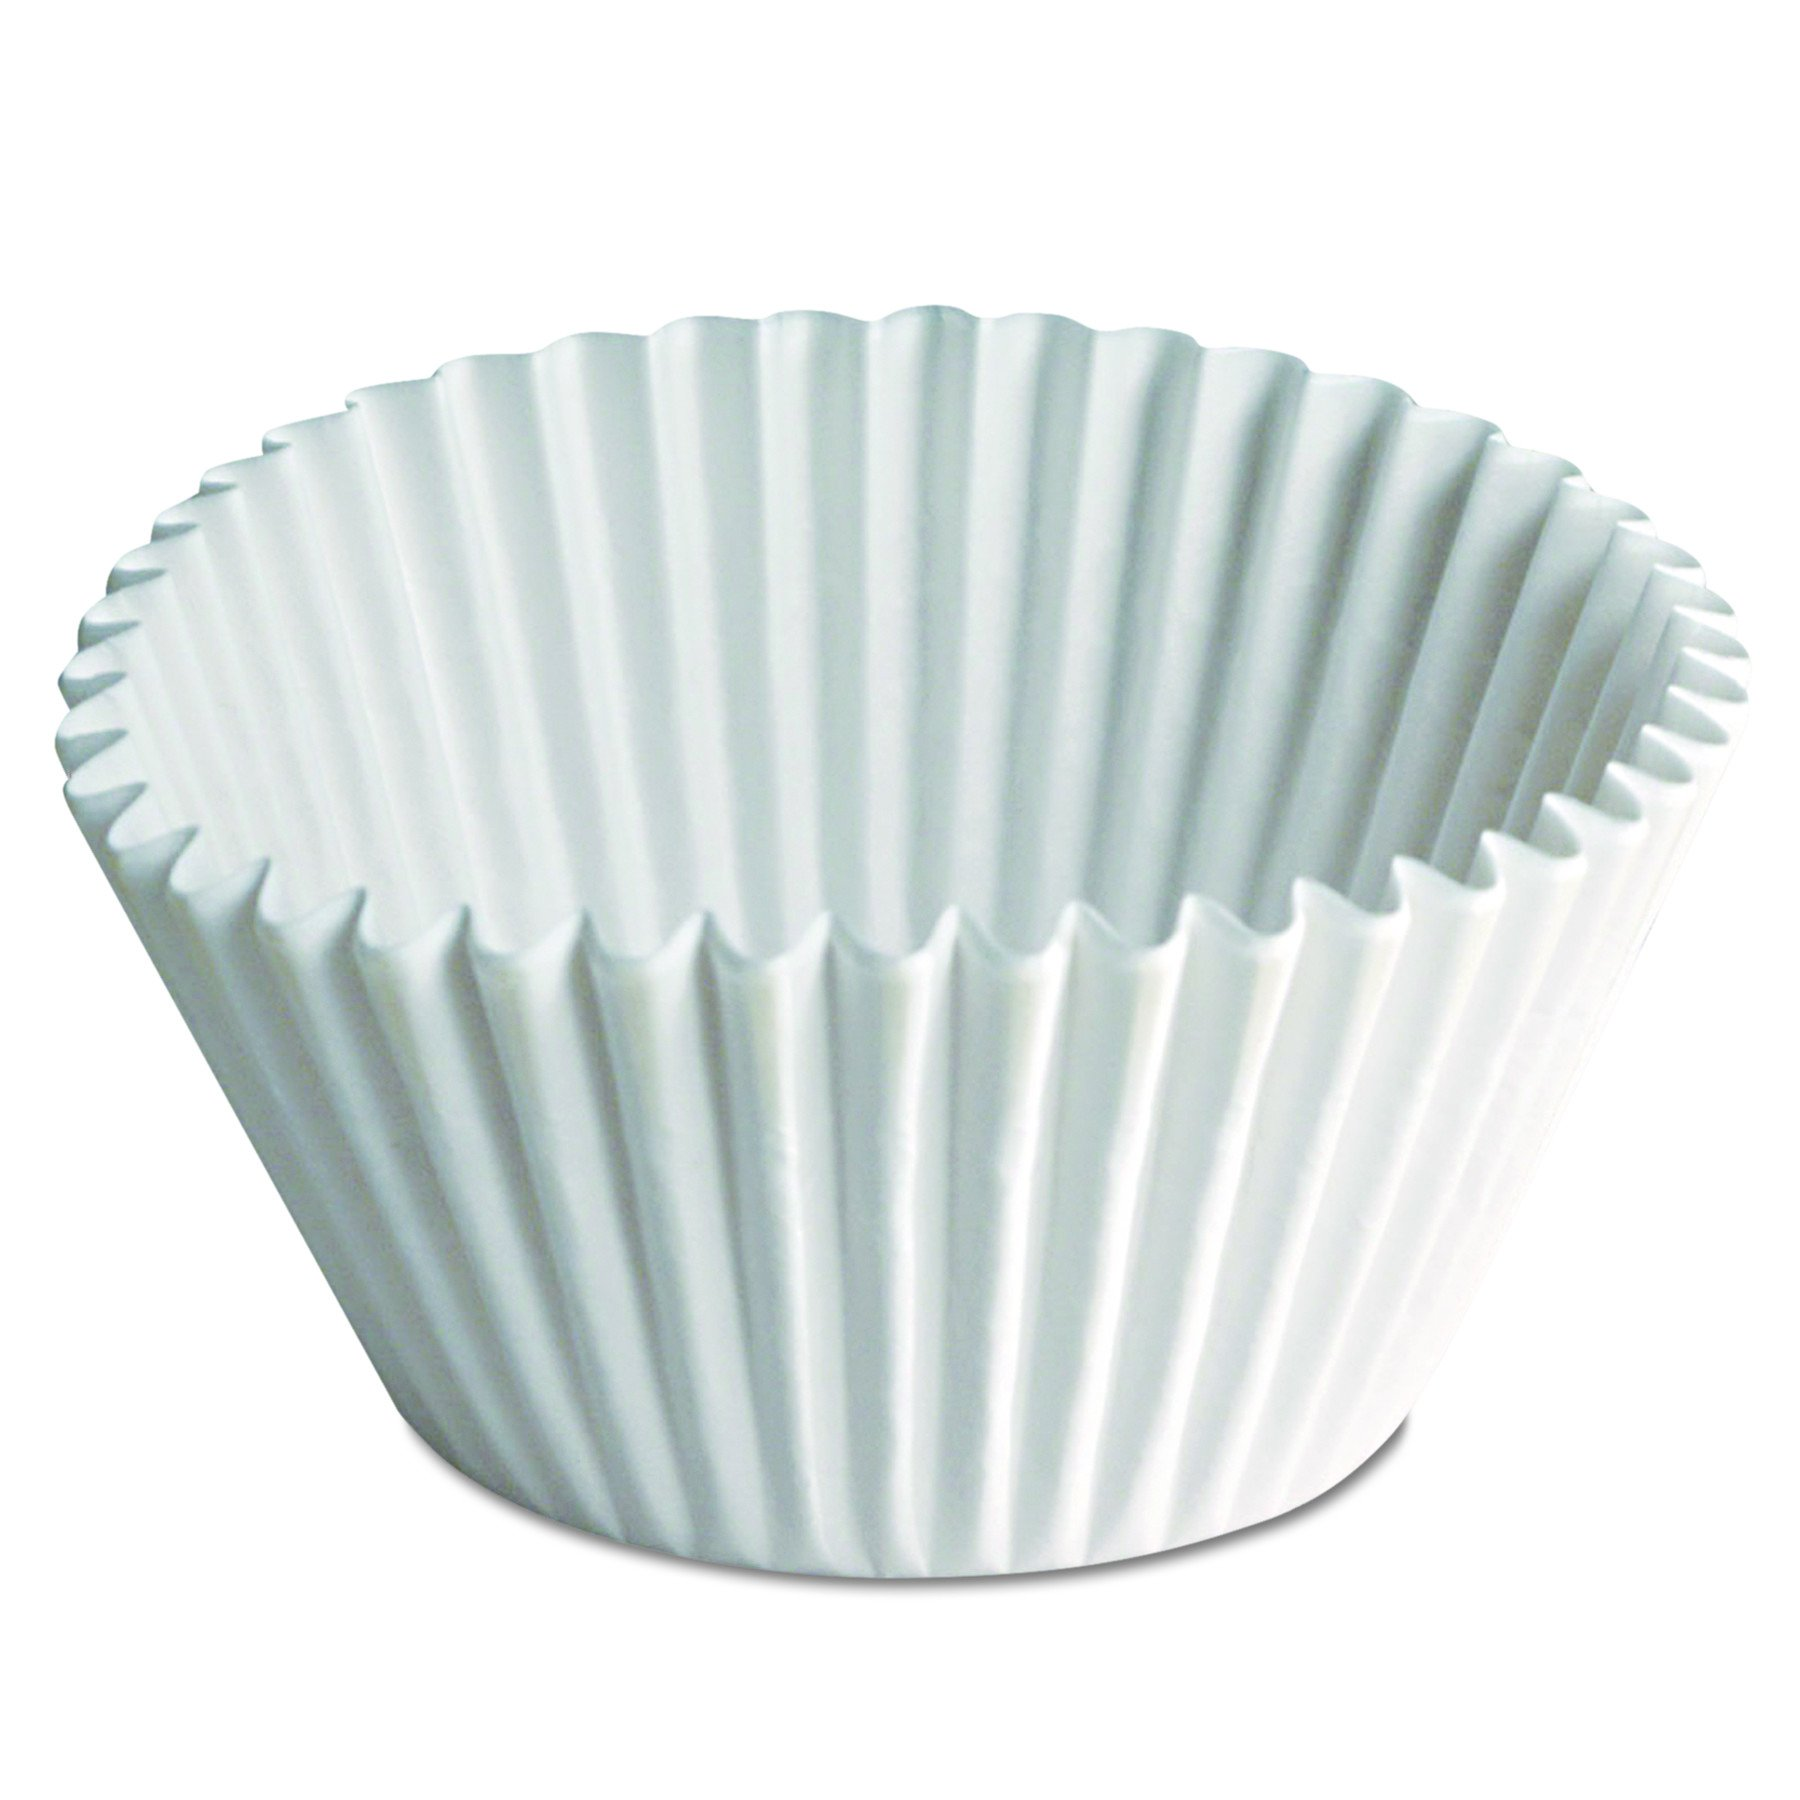 Hoffmaster 610070 2-1/4 Inch Bottom Width by 1-7/8 Inch Wall Height 6 Inch White Fluted Paper Bake Cup 500-Pack (Case of 20)